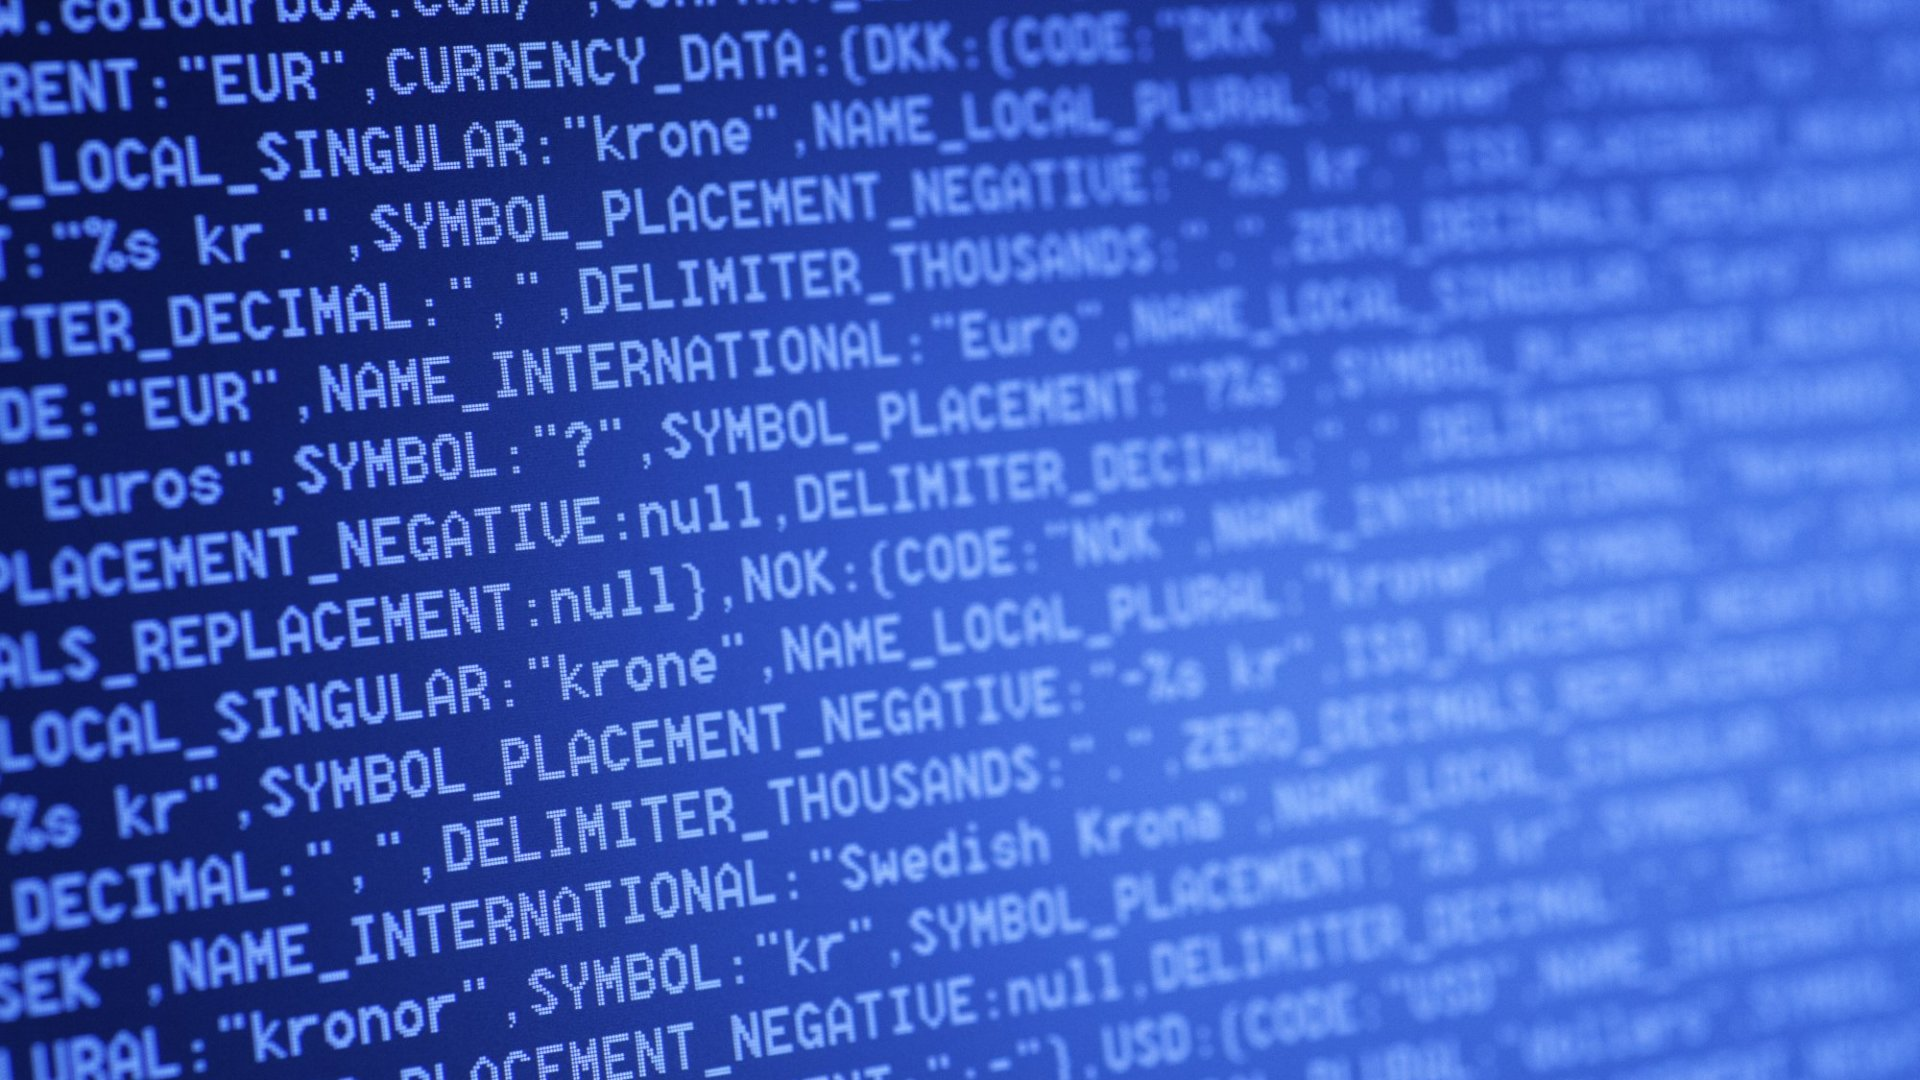 Hackers are focusing their efforts on small companies that don't properly protect their data.